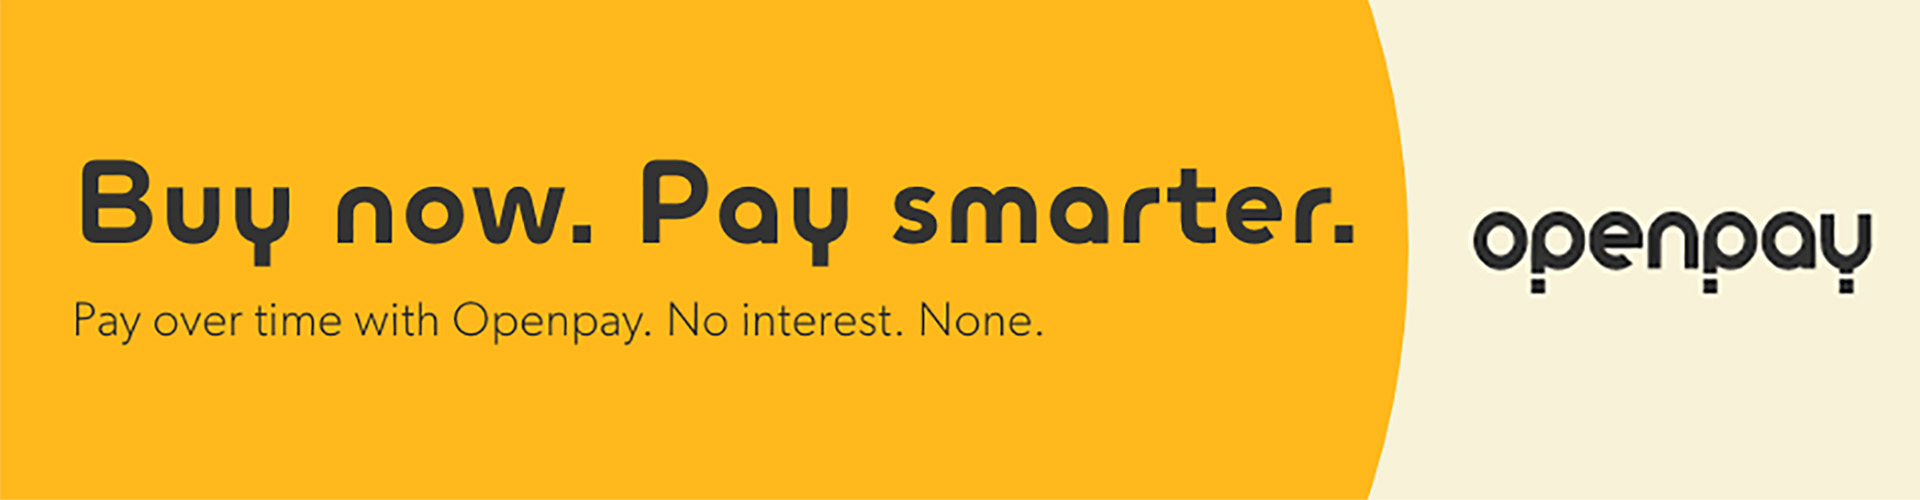 Openpay - Buy Now. Pay Smarter.